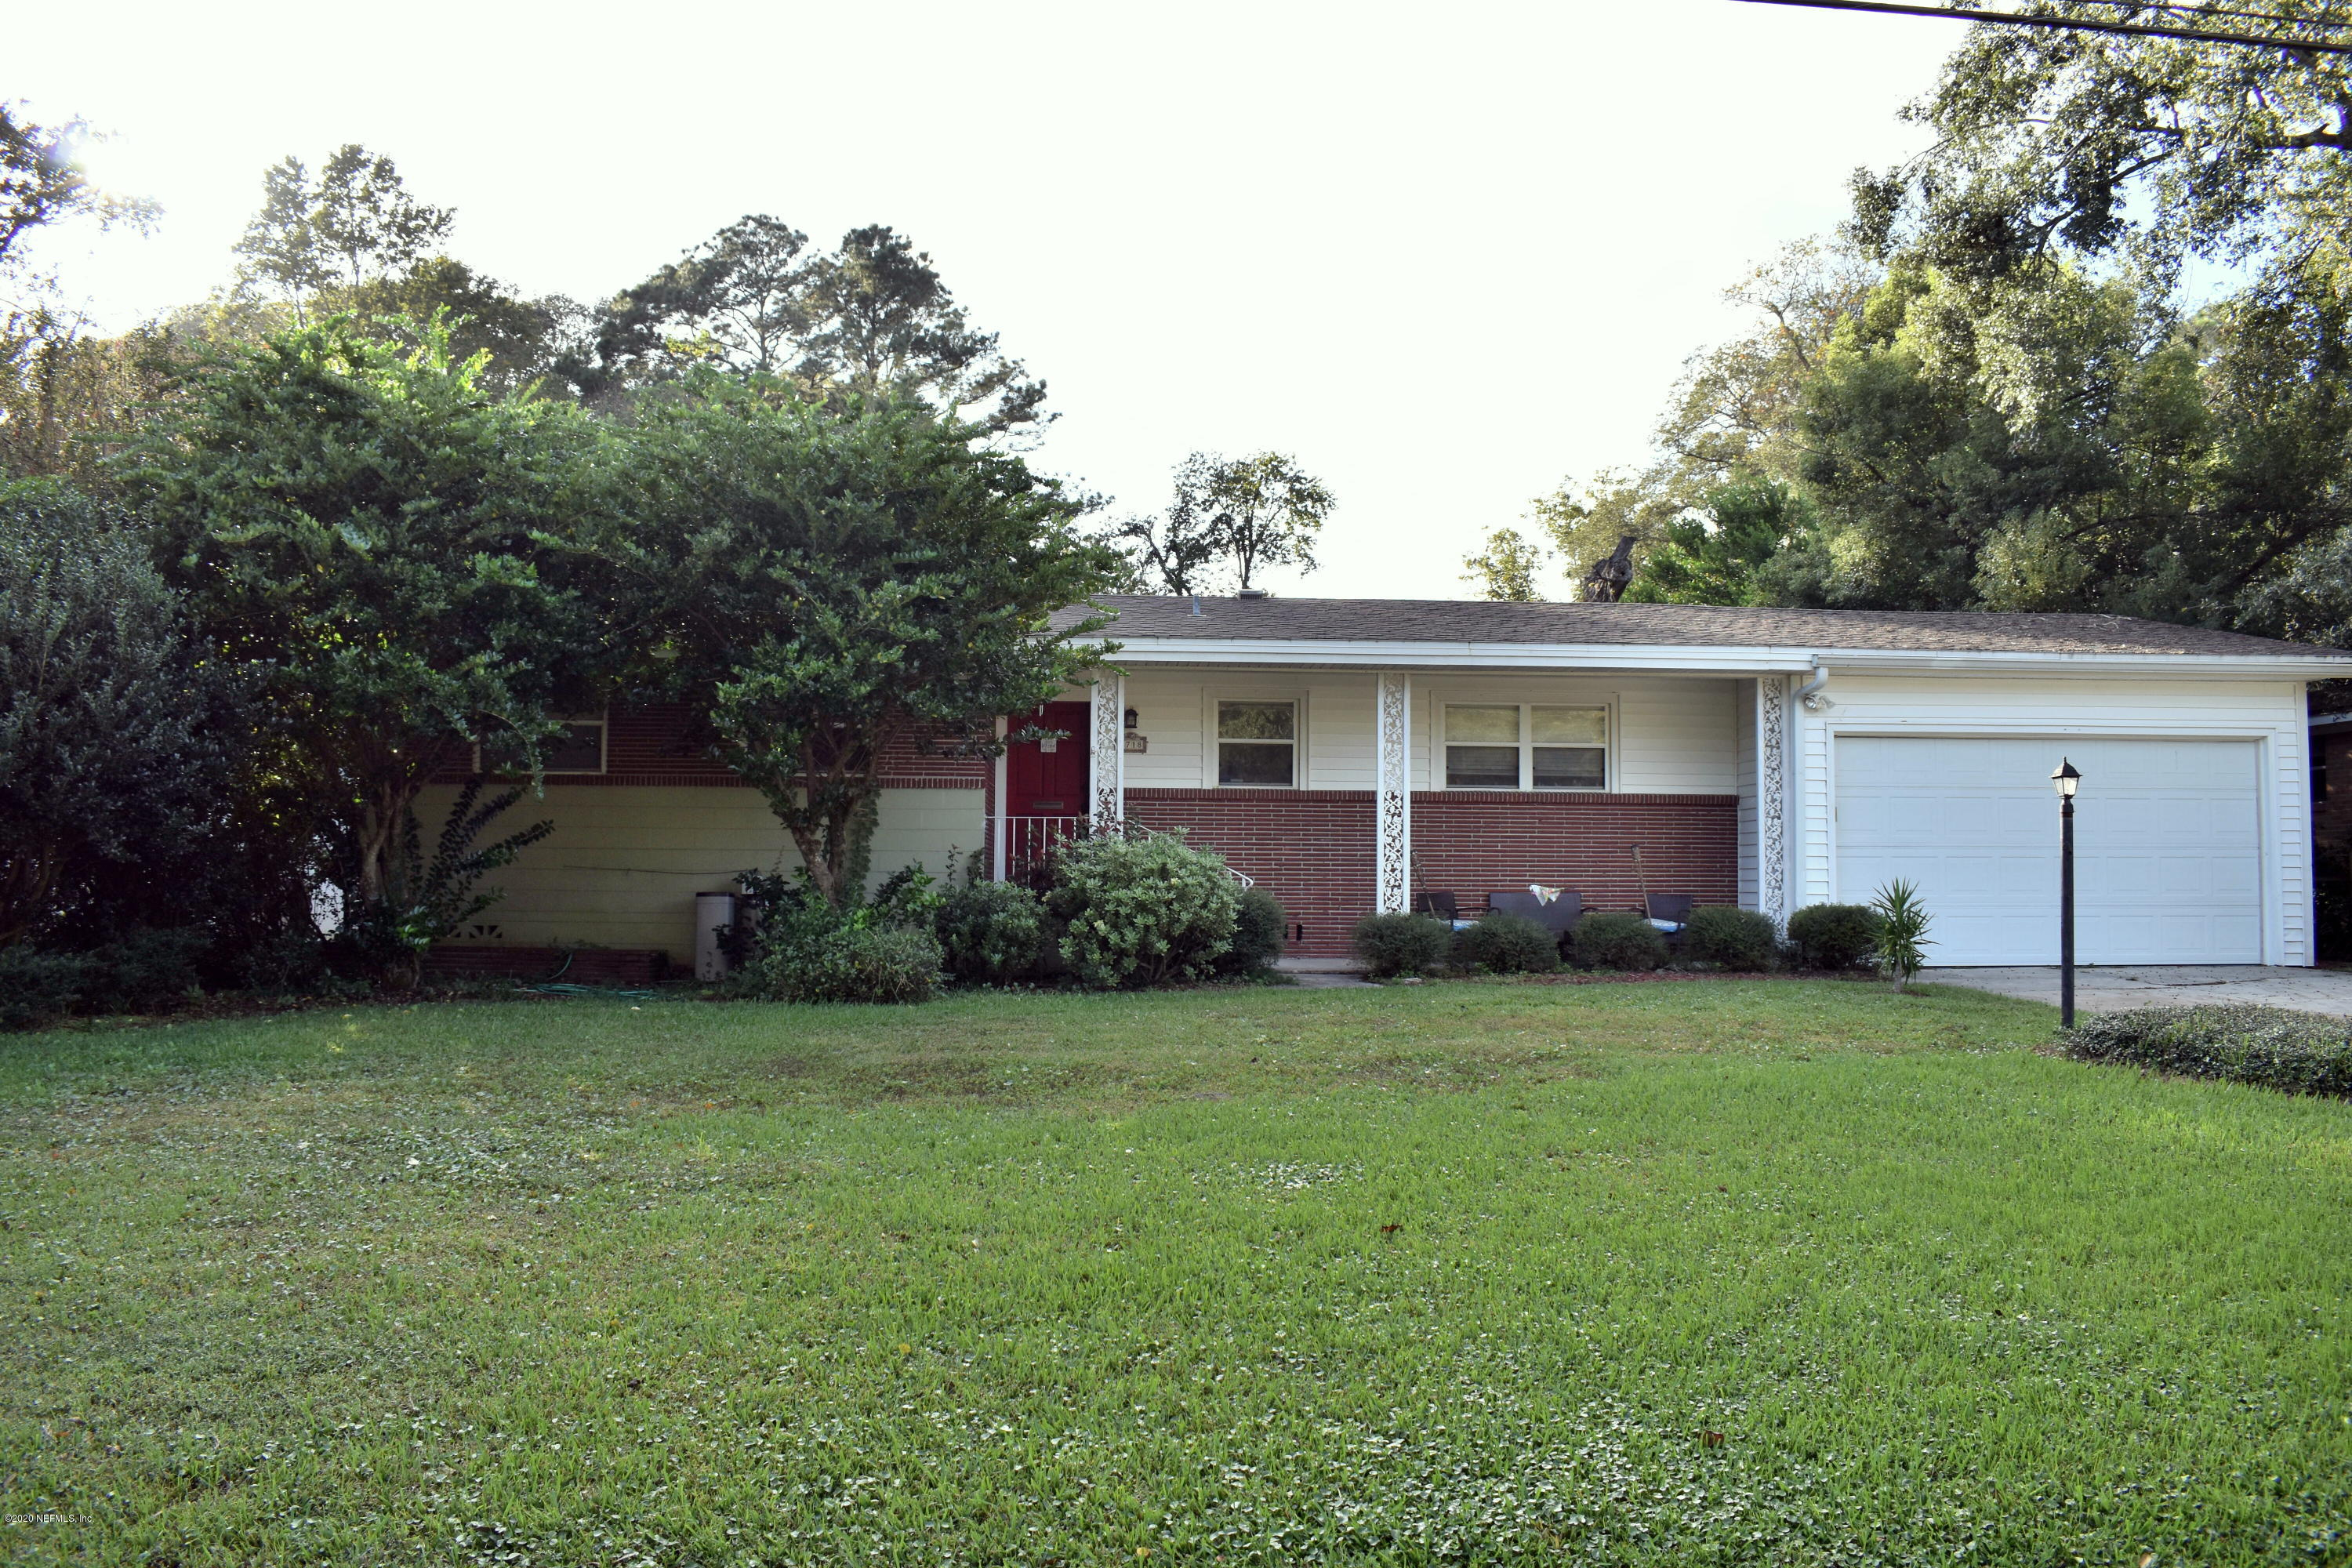 1718 WHITMAN, JACKSONVILLE, FLORIDA 32210, 4 Bedrooms Bedrooms, ,2 BathroomsBathrooms,Residential,For sale,WHITMAN,1080339